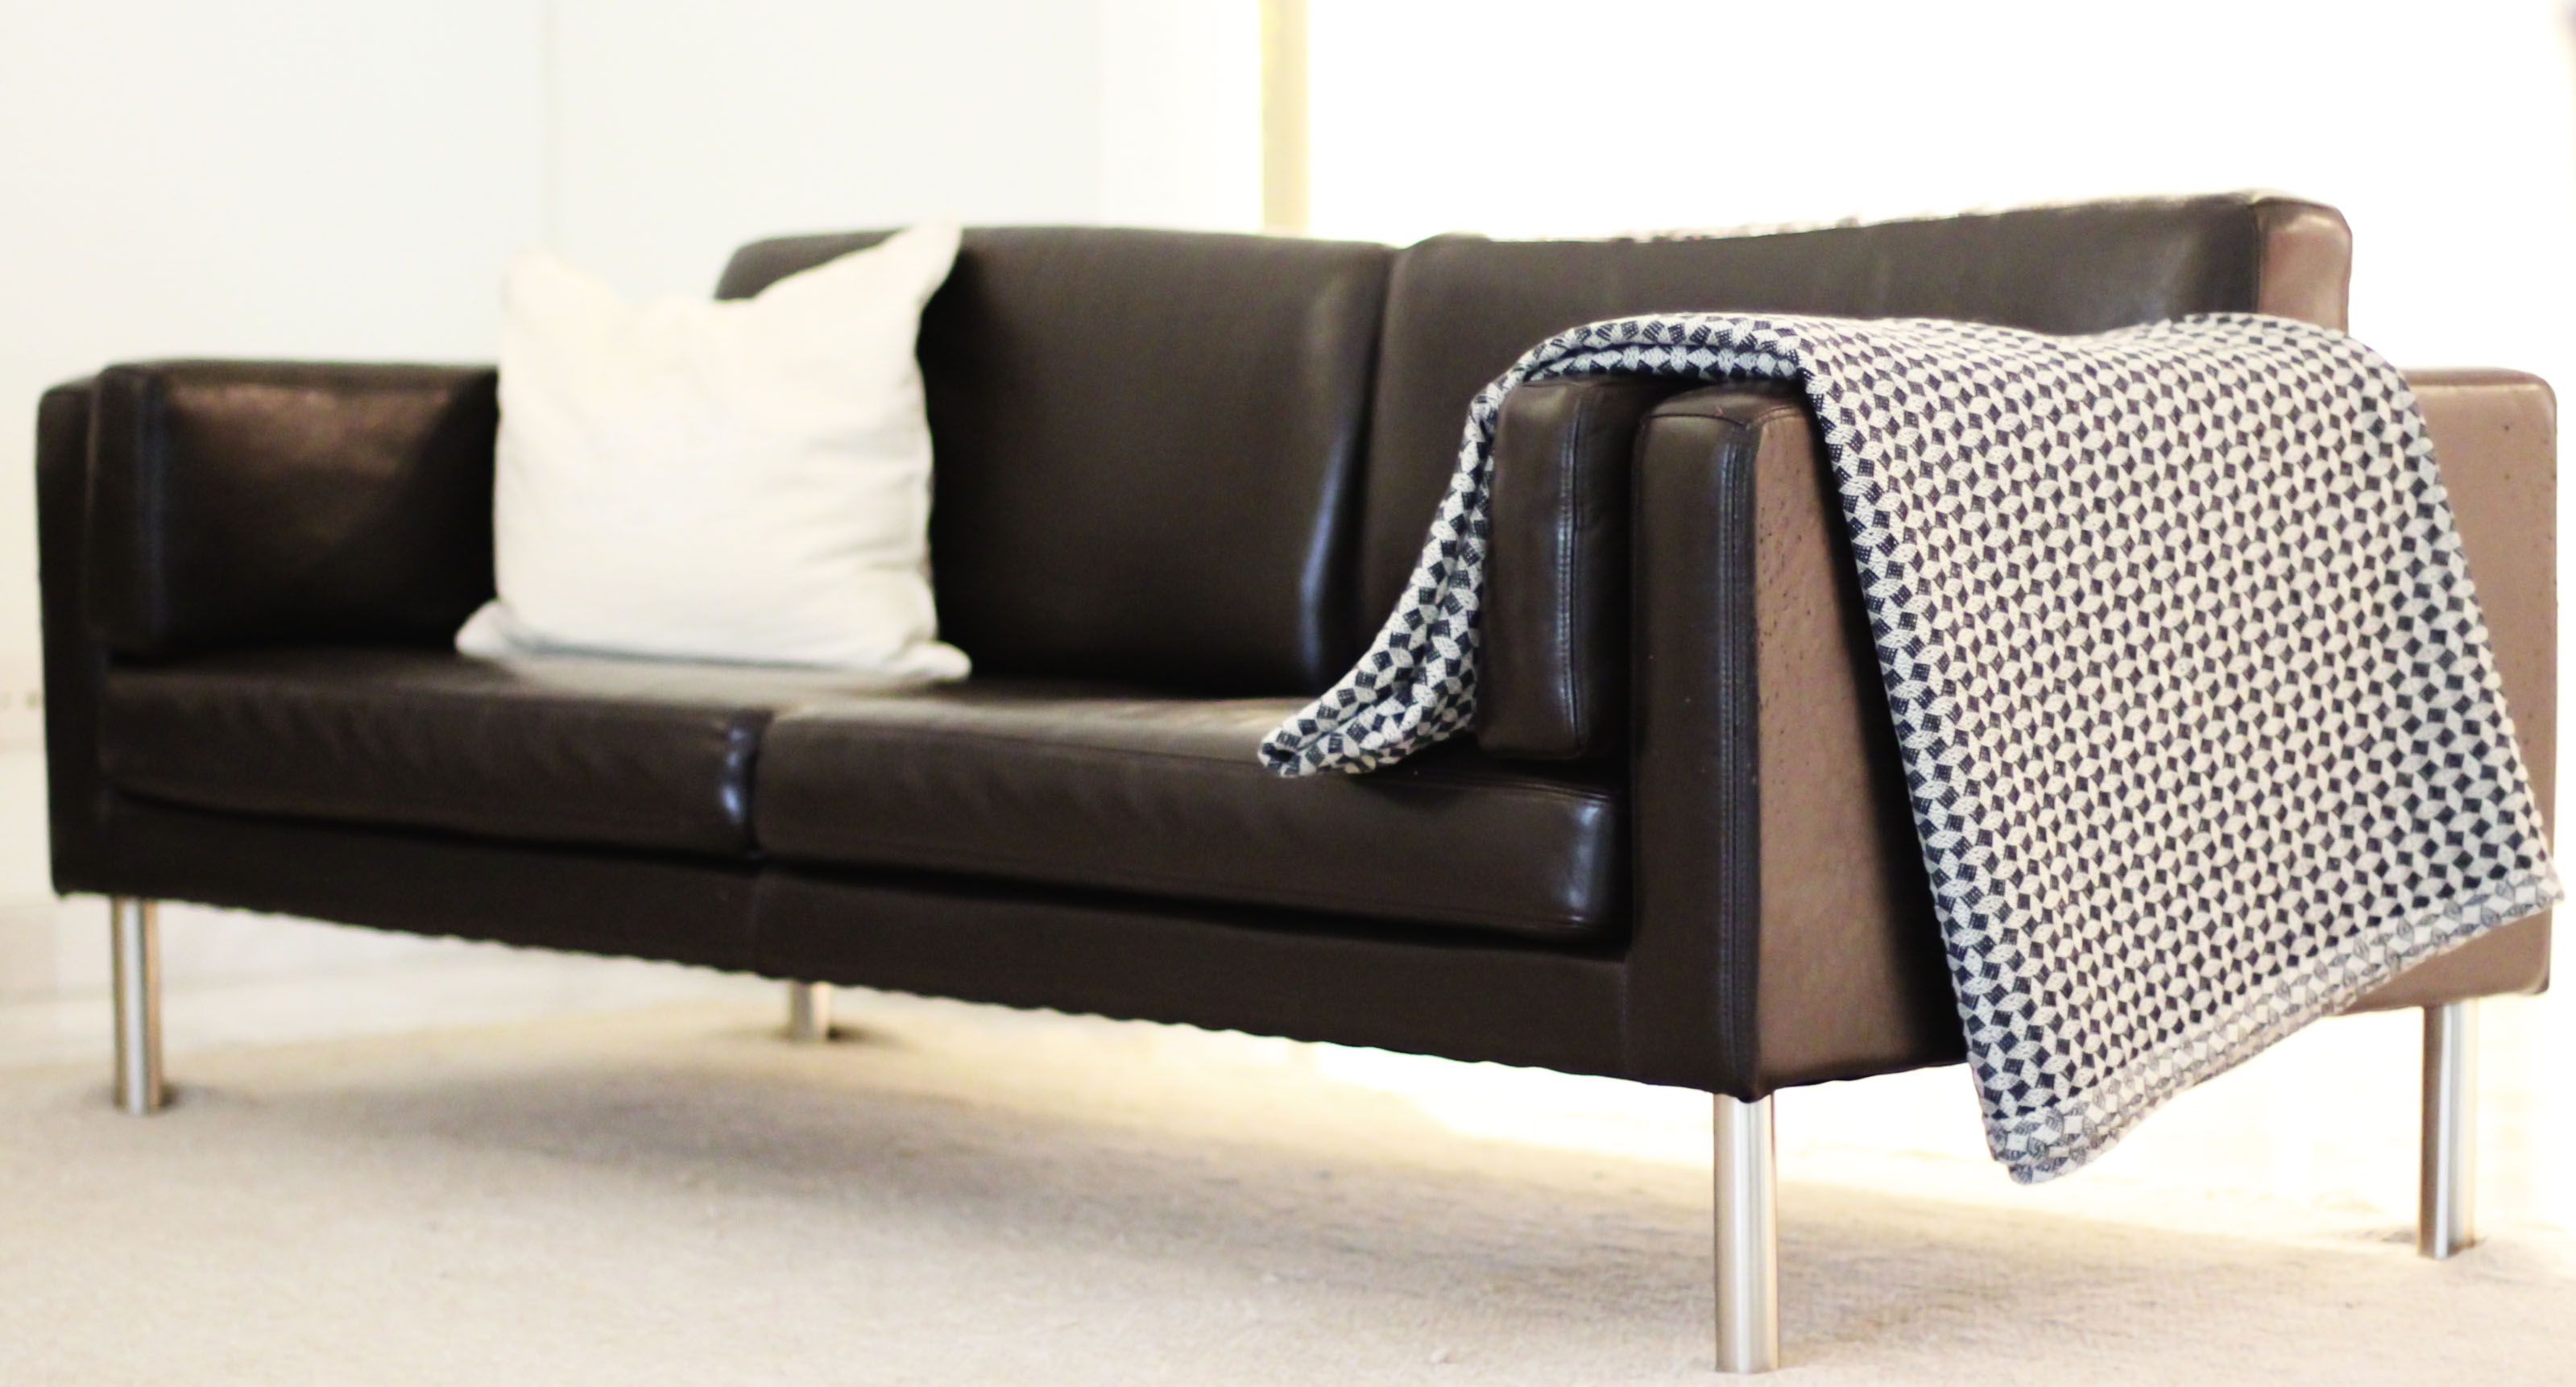 Superieur Leather Sofa   Ikea..for Upstate Weekend House